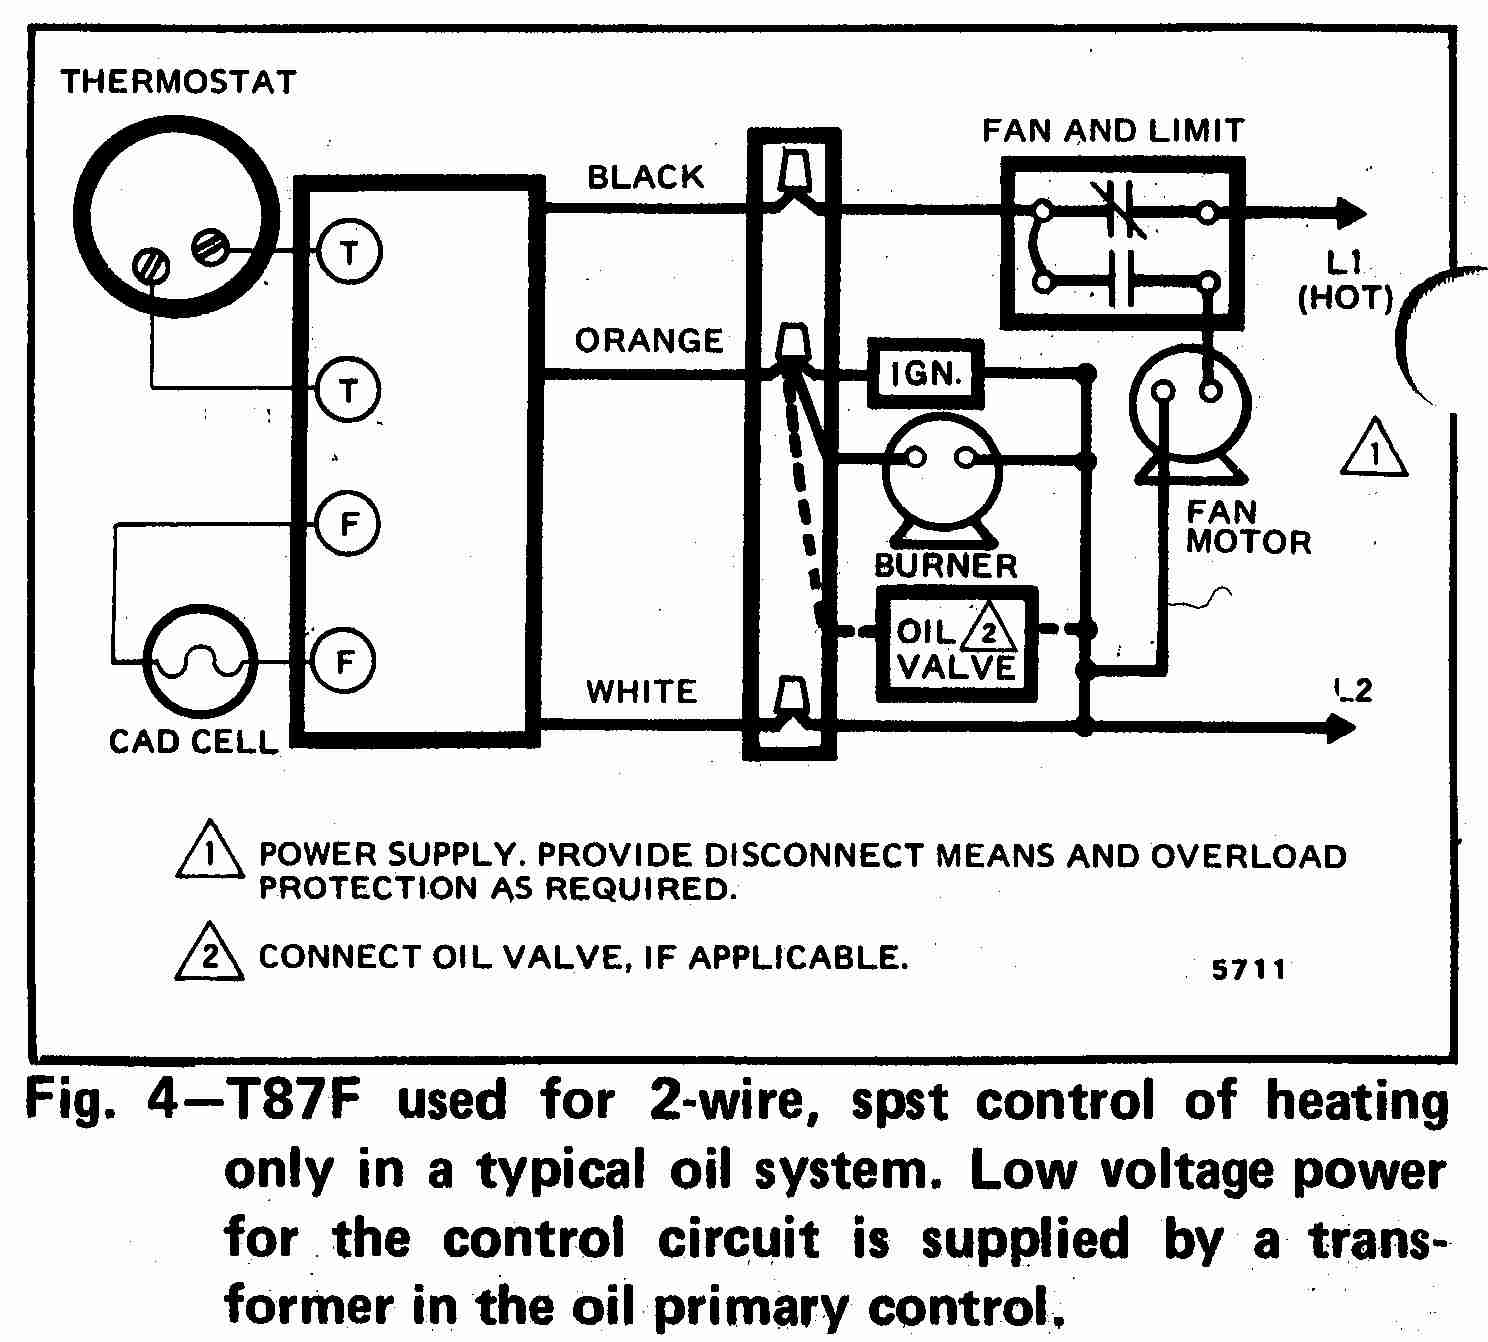 6331 Williams Wall Furnace Limit Switch Wiring Diagram Wiring Resources